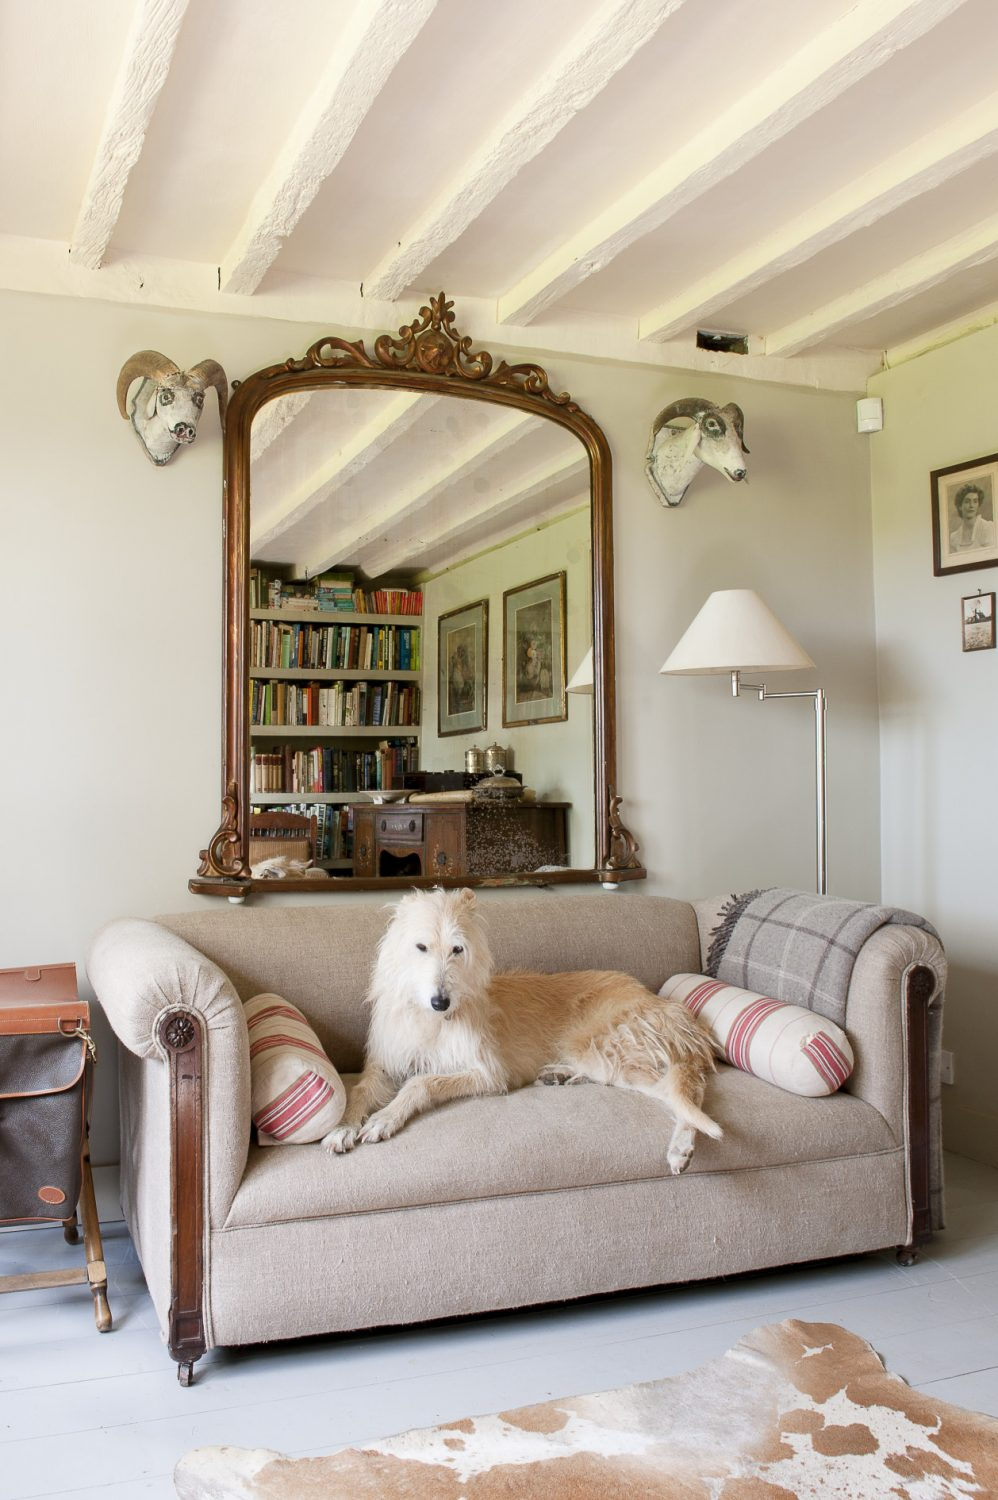 Books climb either side of the fireplace while across the room, above the sofa, is a huge gilded French overmantle mirror flanked by two strangely comical painted goat skulls from Foxhole Antiques in Hurst Green